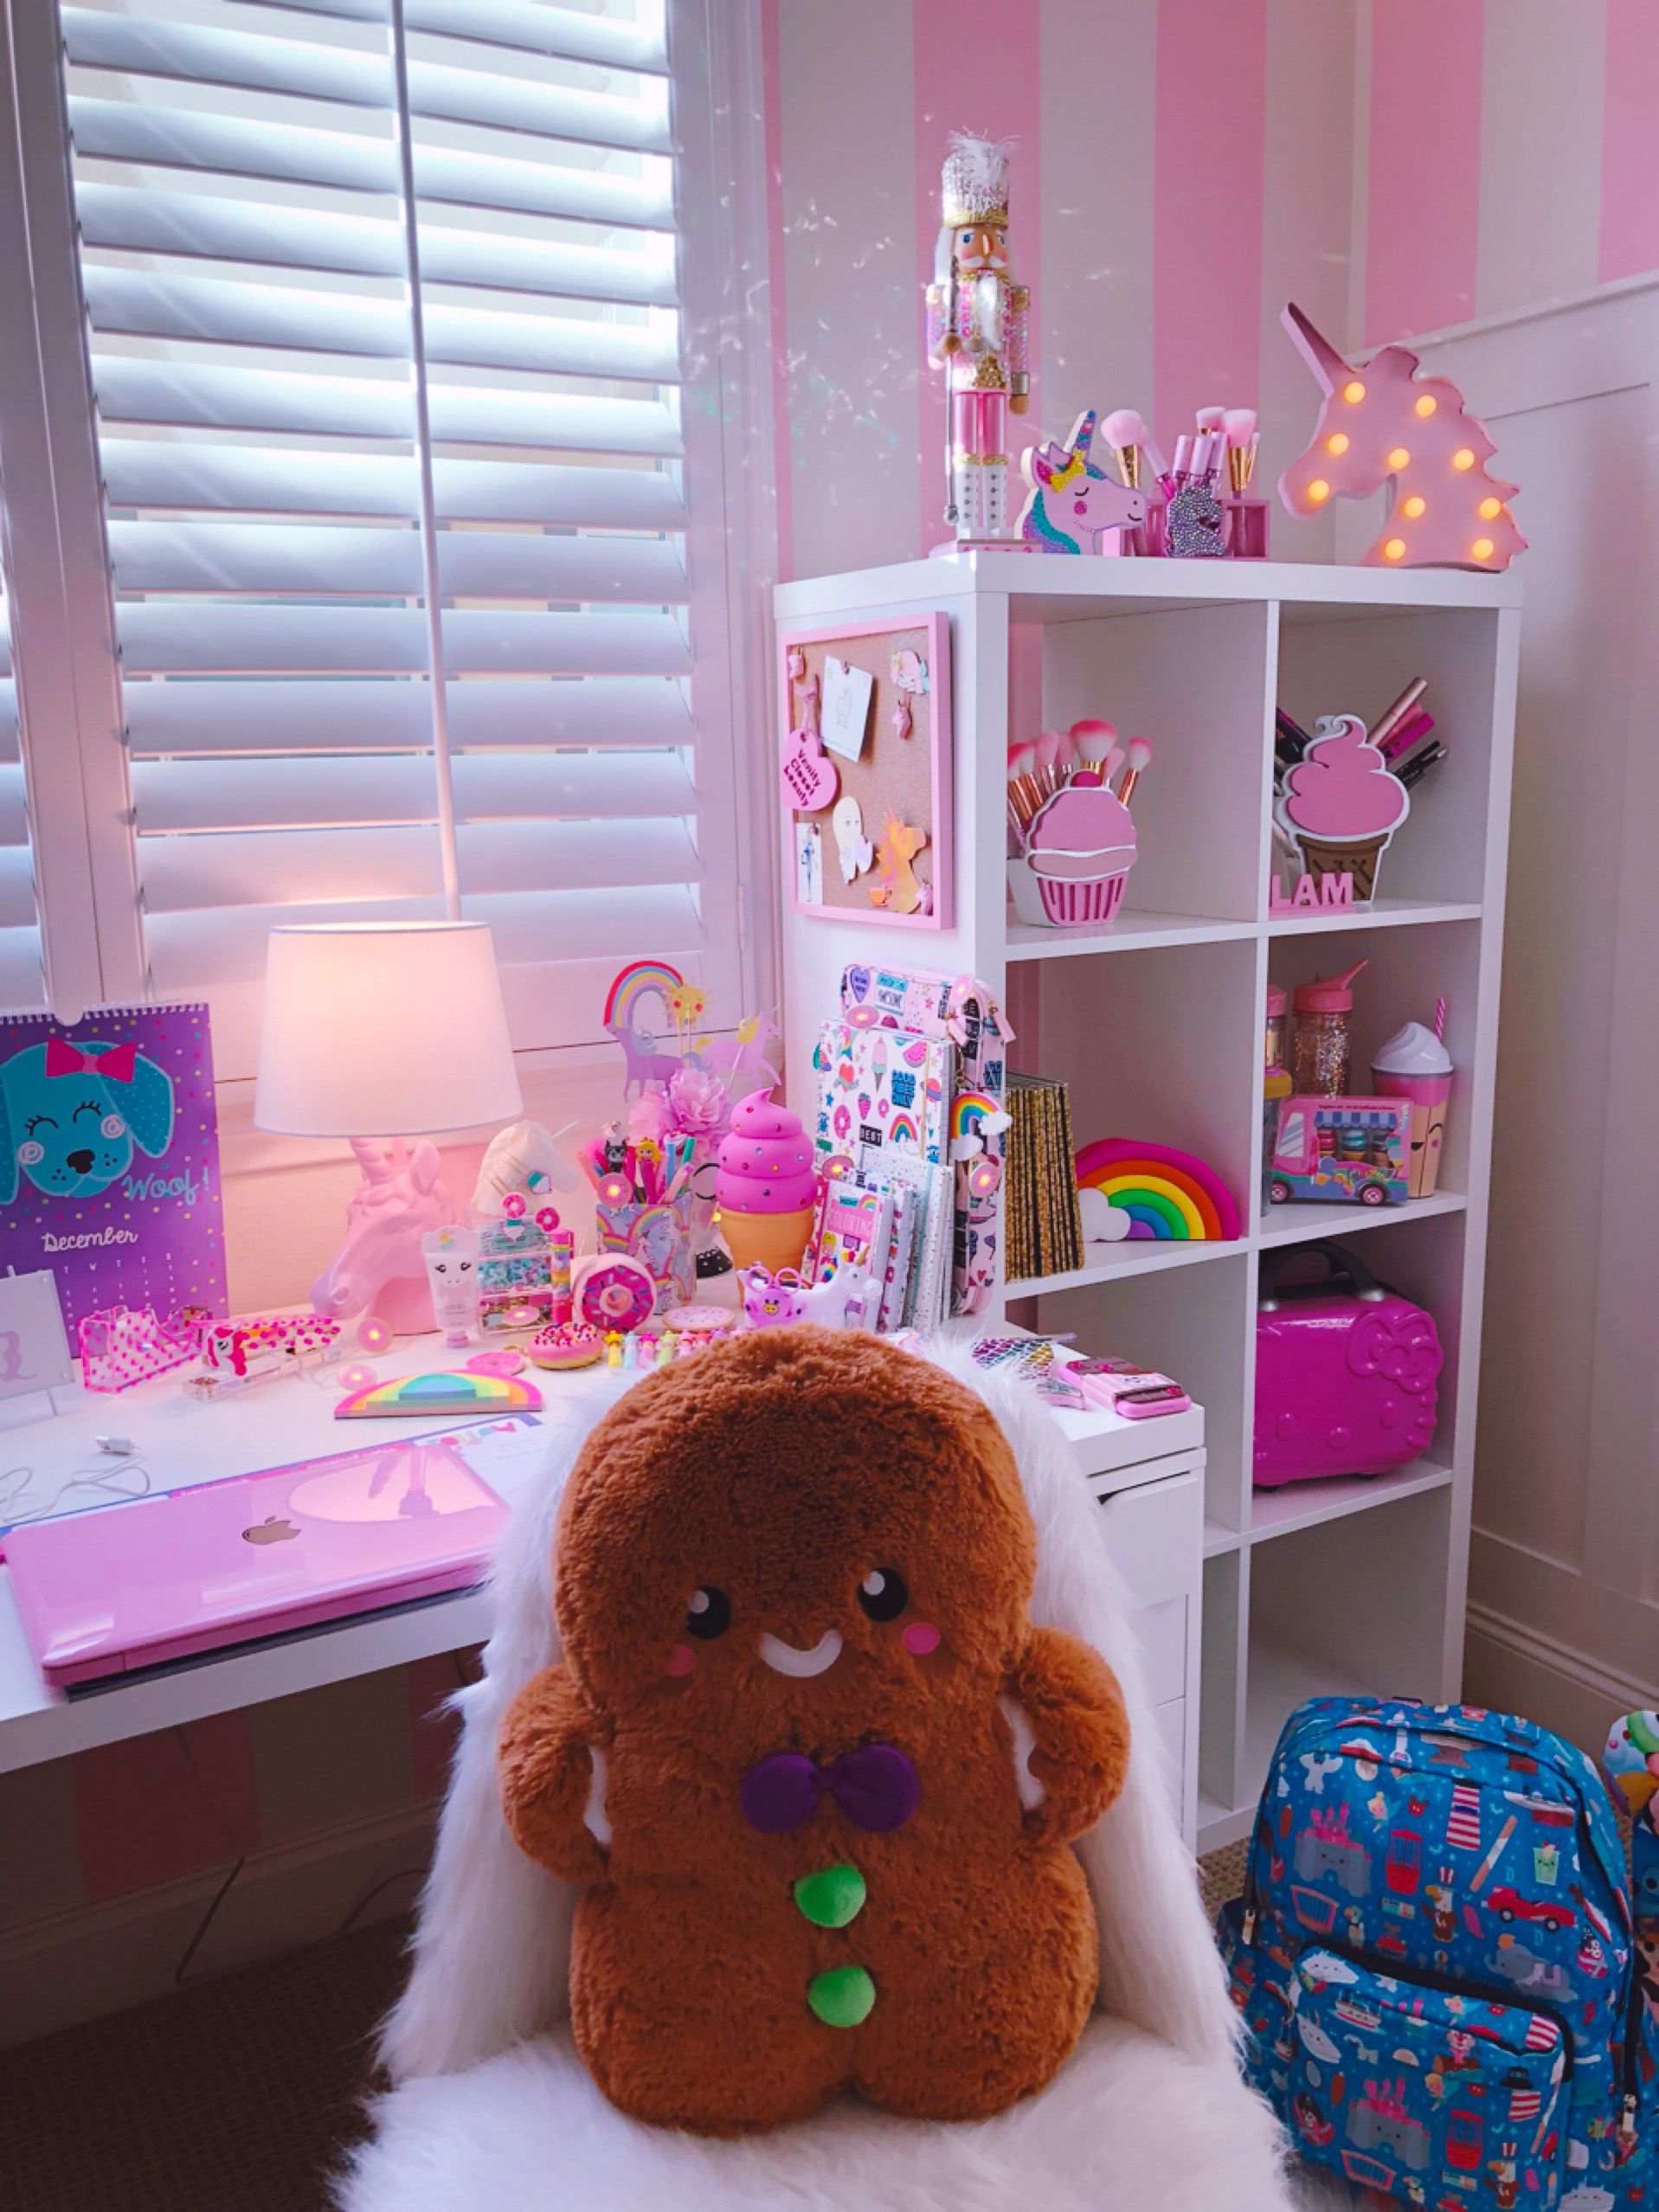 Look At The Cute Little Gingerbread Man💗 Dream Room